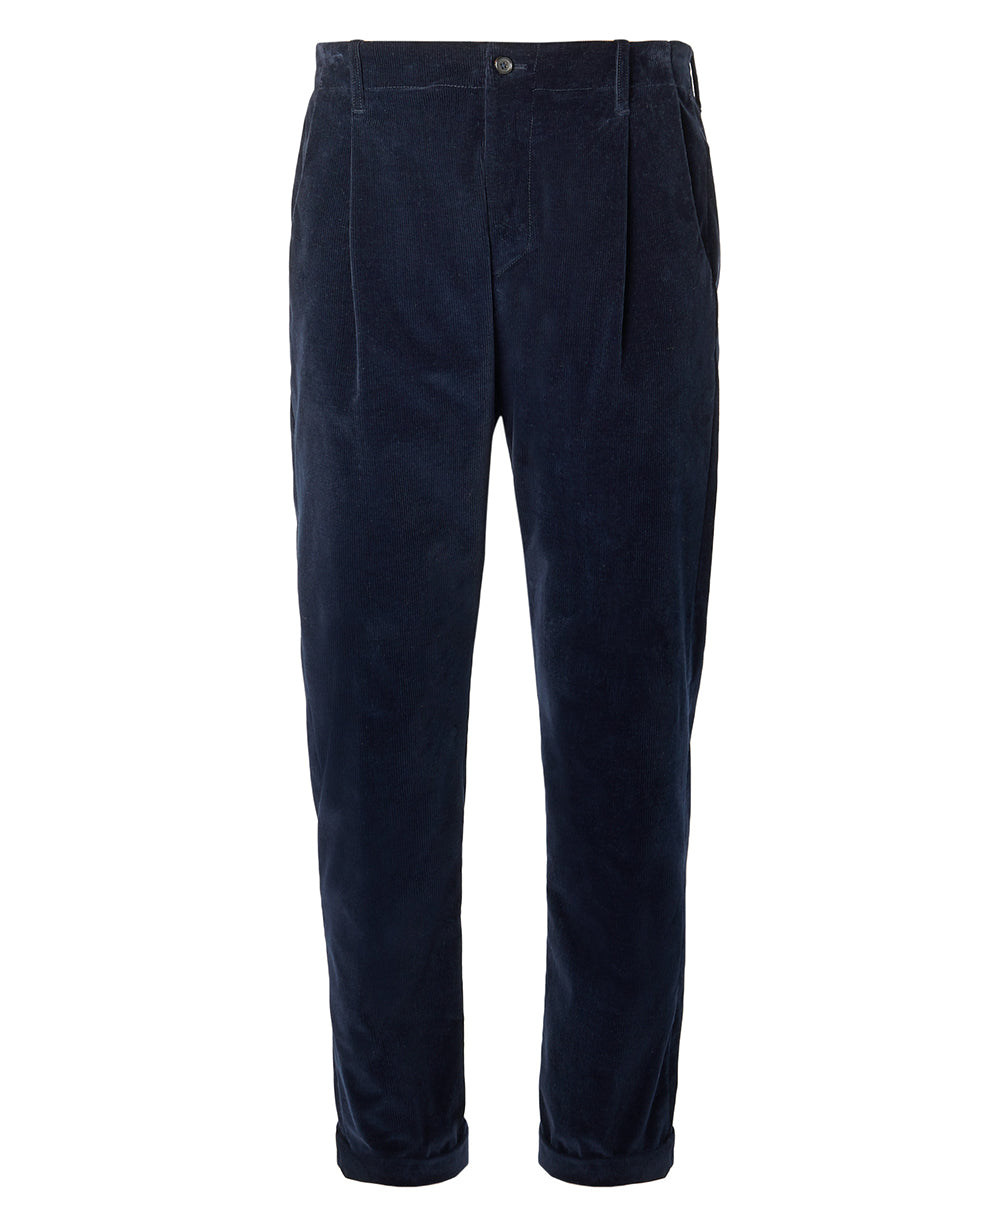 Goodwood Connolly Corduroy Trouser Navy